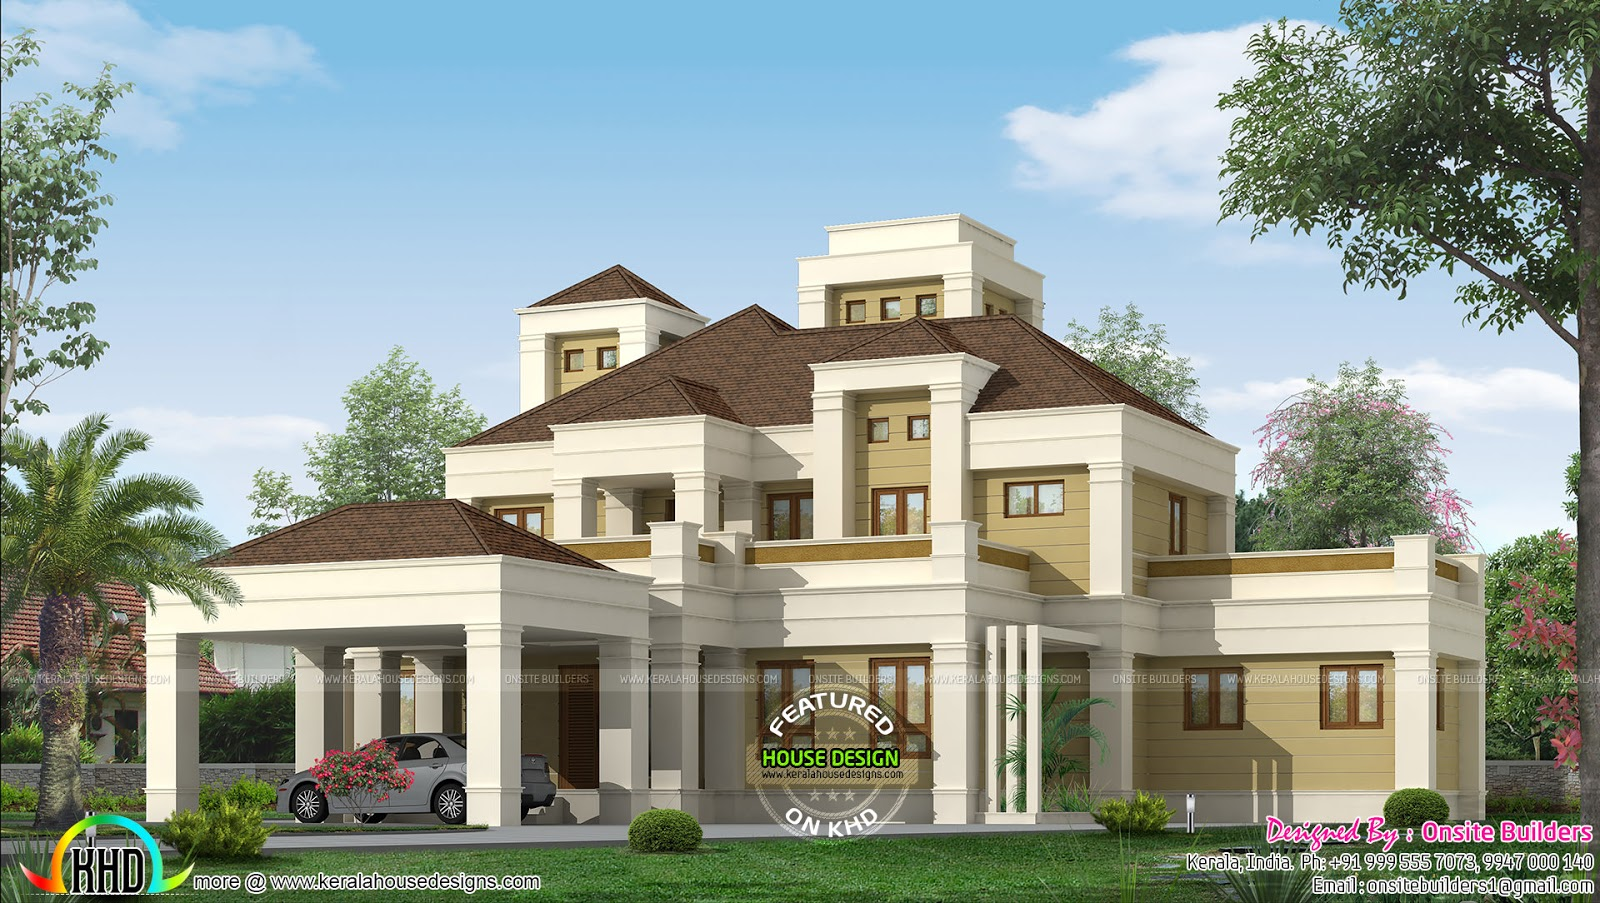 Elegant colonial home plan kerala home design and floor for Colonial home designs